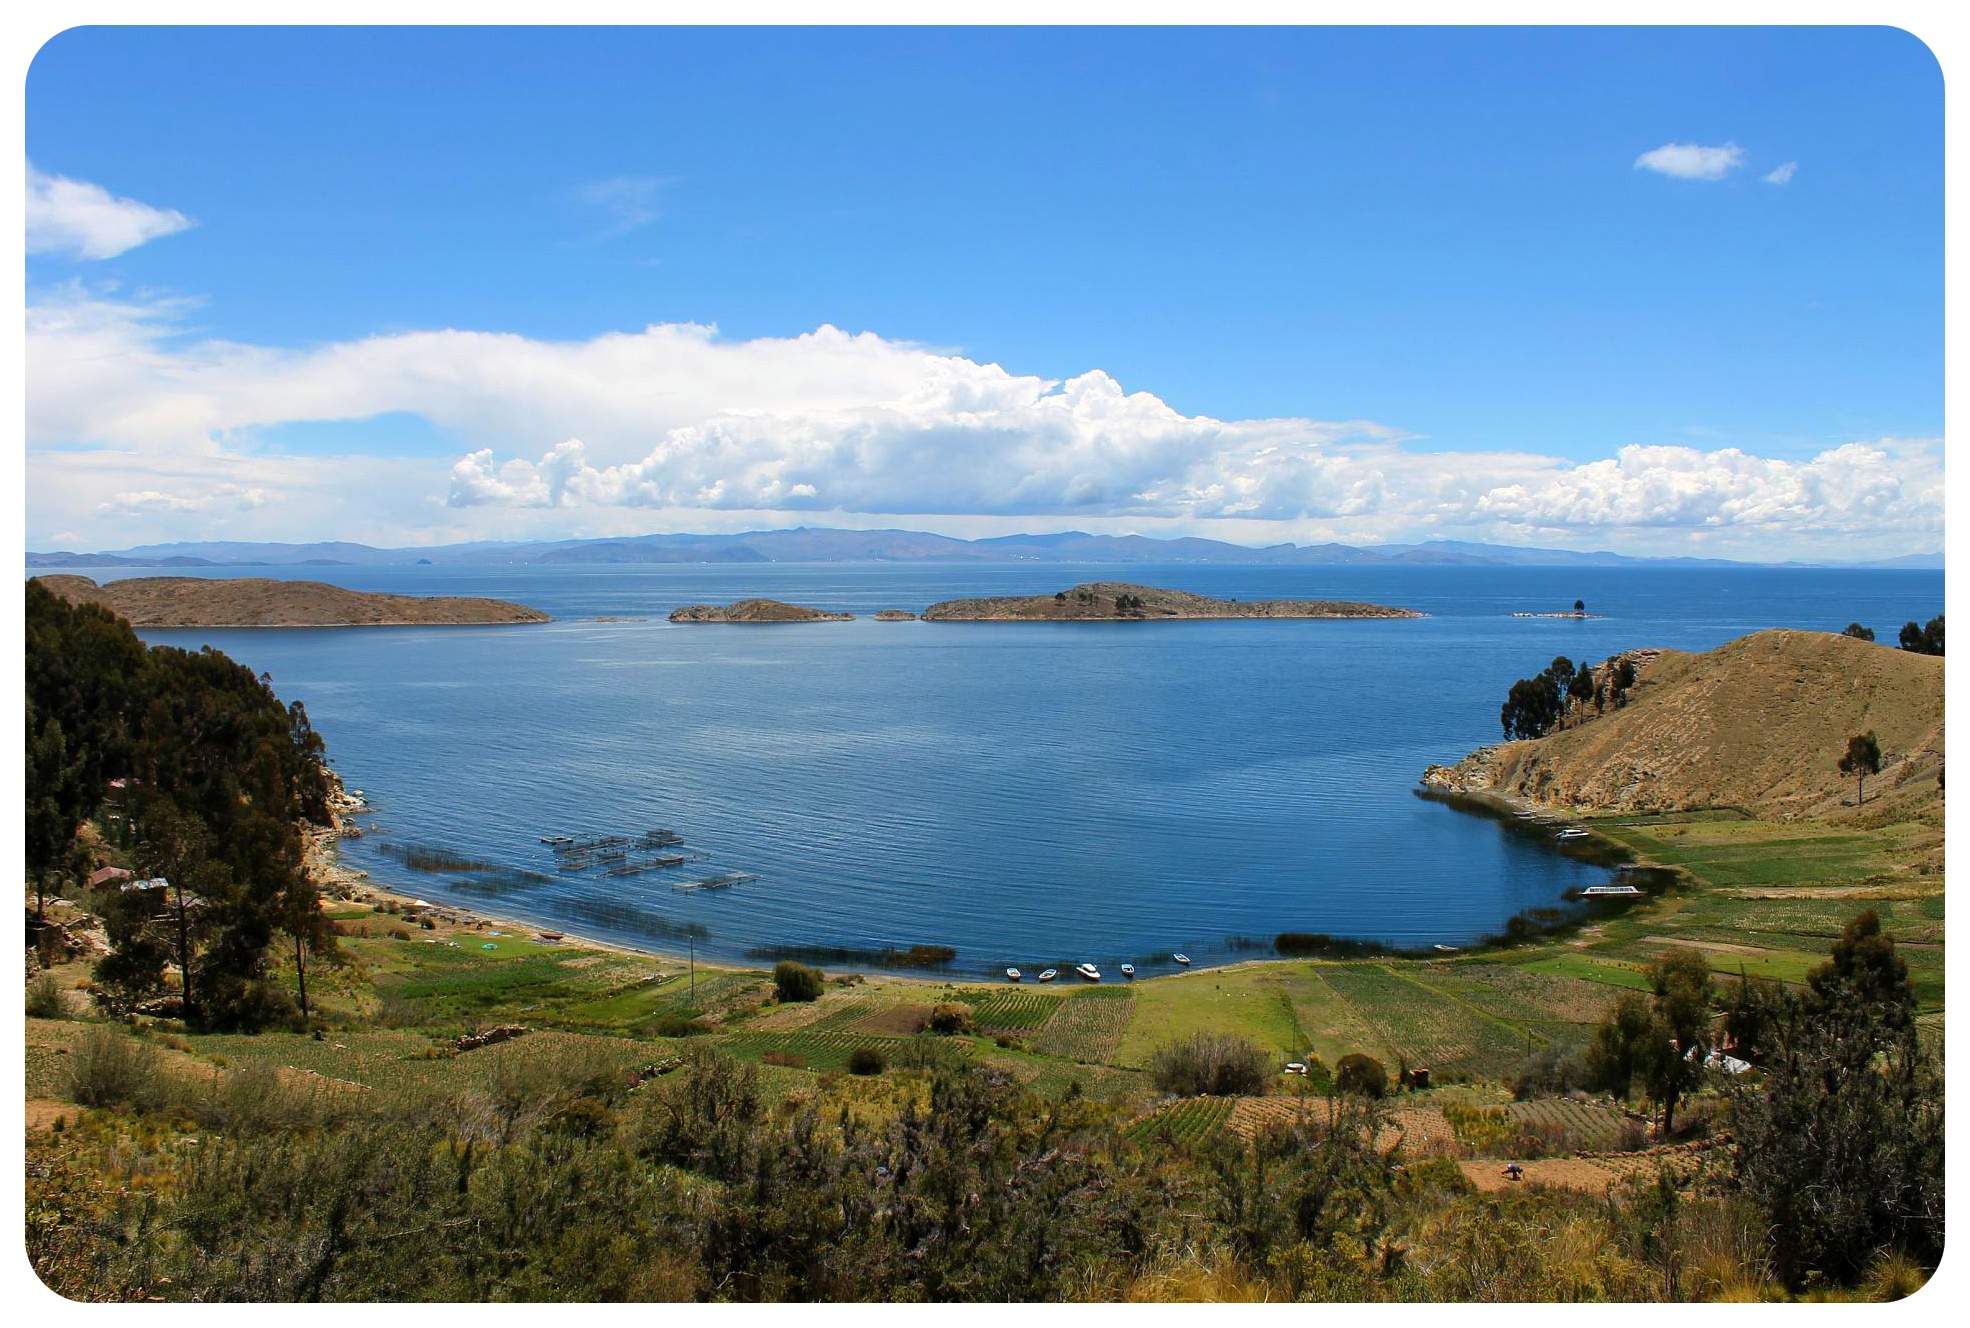 lake titicaca view